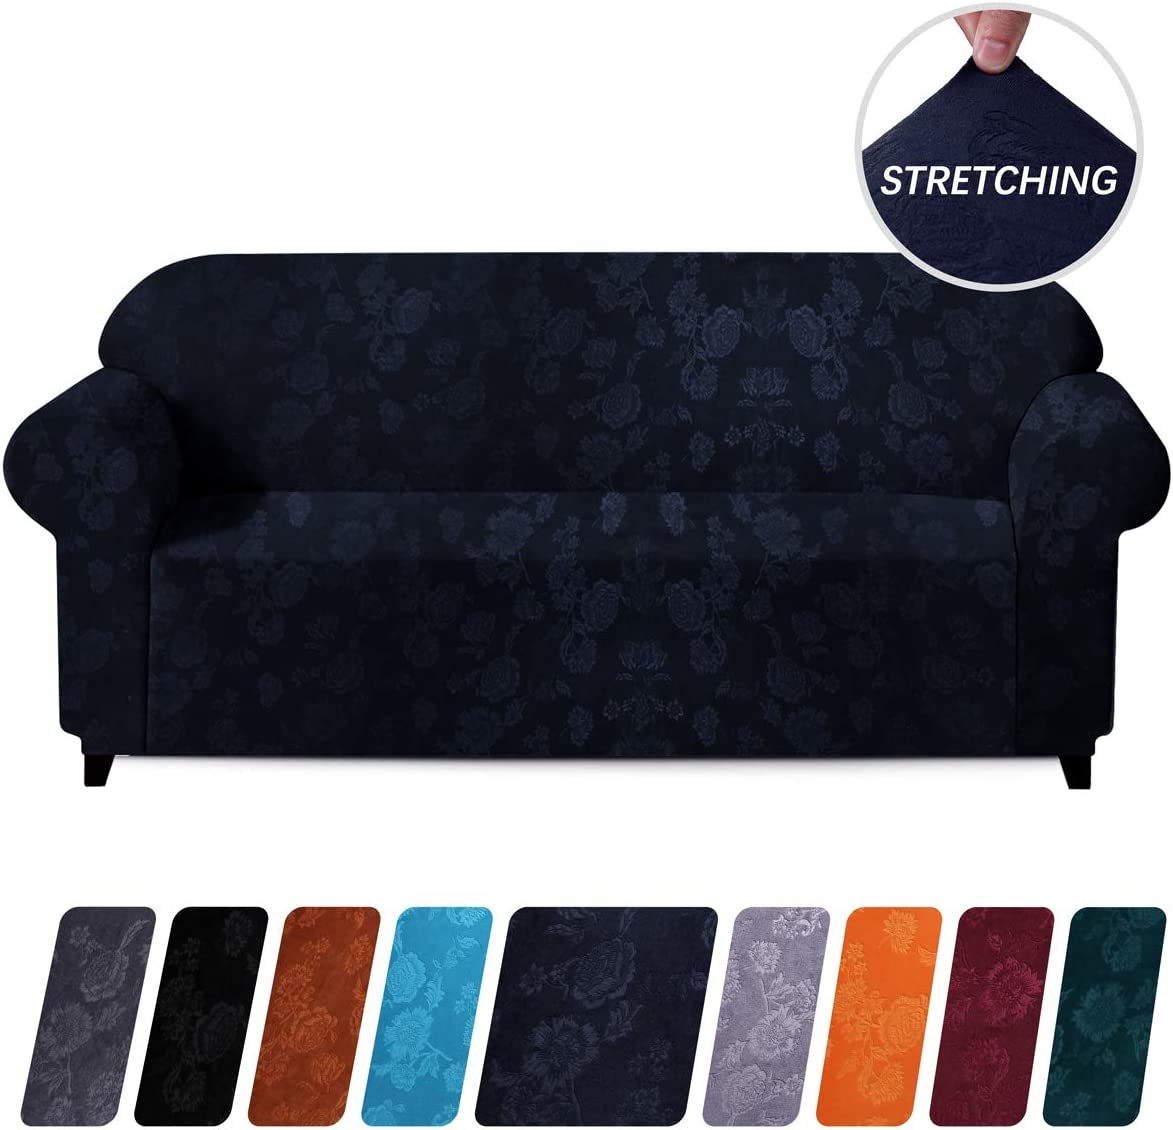 Anti Slip Stretch Fit Couch Sofa Cover Lounge Recliner Chair Slipcover Elastic